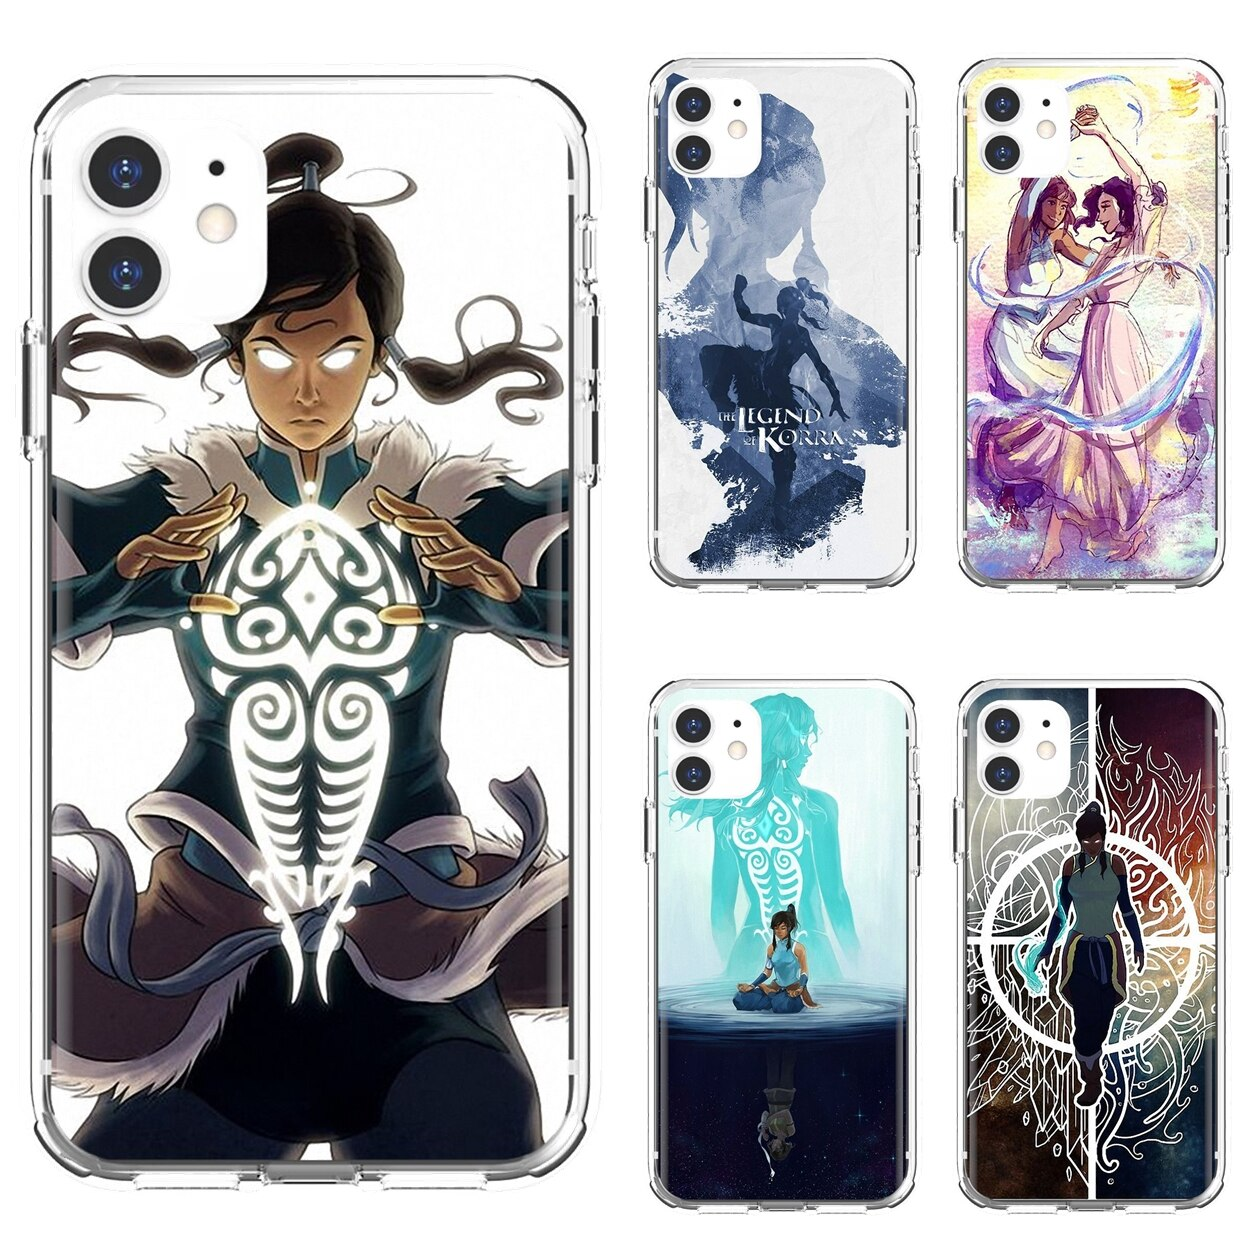 Silicone Shell Case Avatar-The-Legend-Of-Korra-Anime For Xiaomi Redmi 2 S2 3 3S 4 4A 5 5A 5 6 6A 7A